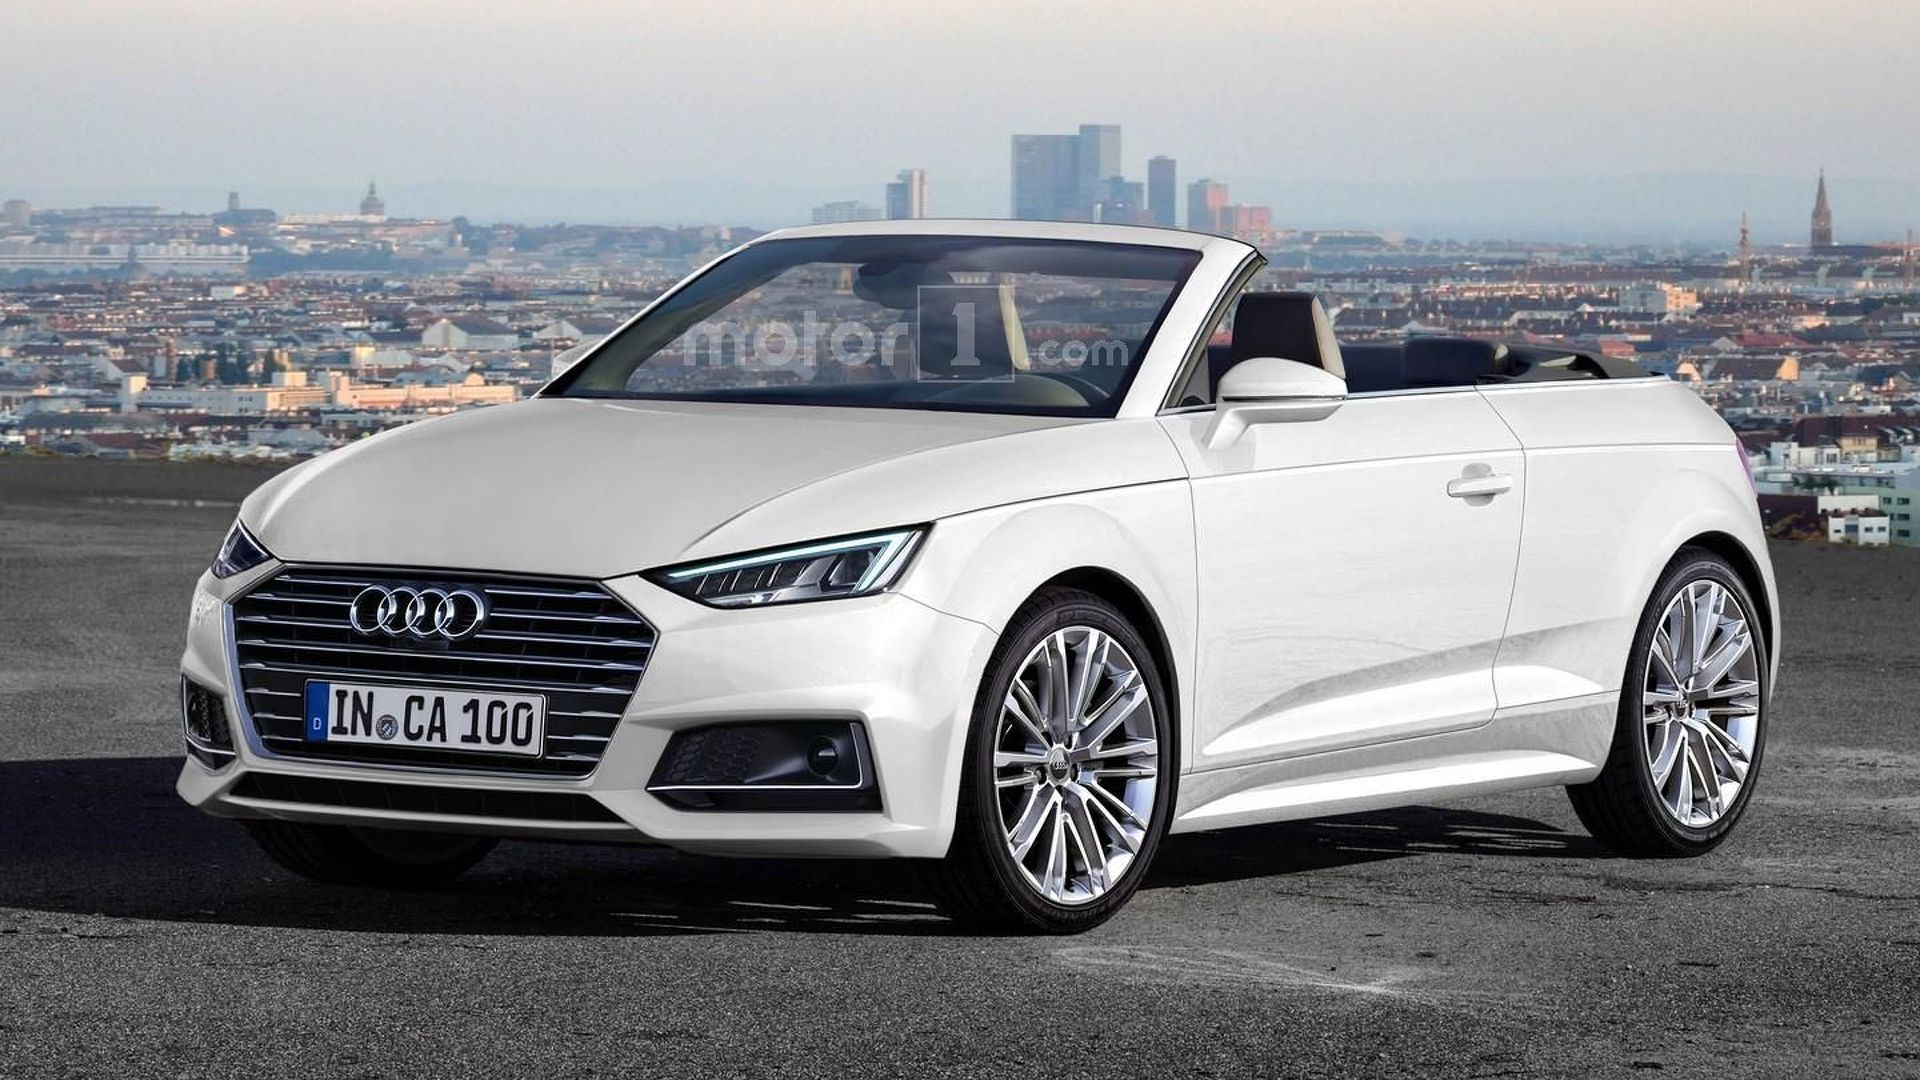 convertible sale top cars for audi speed